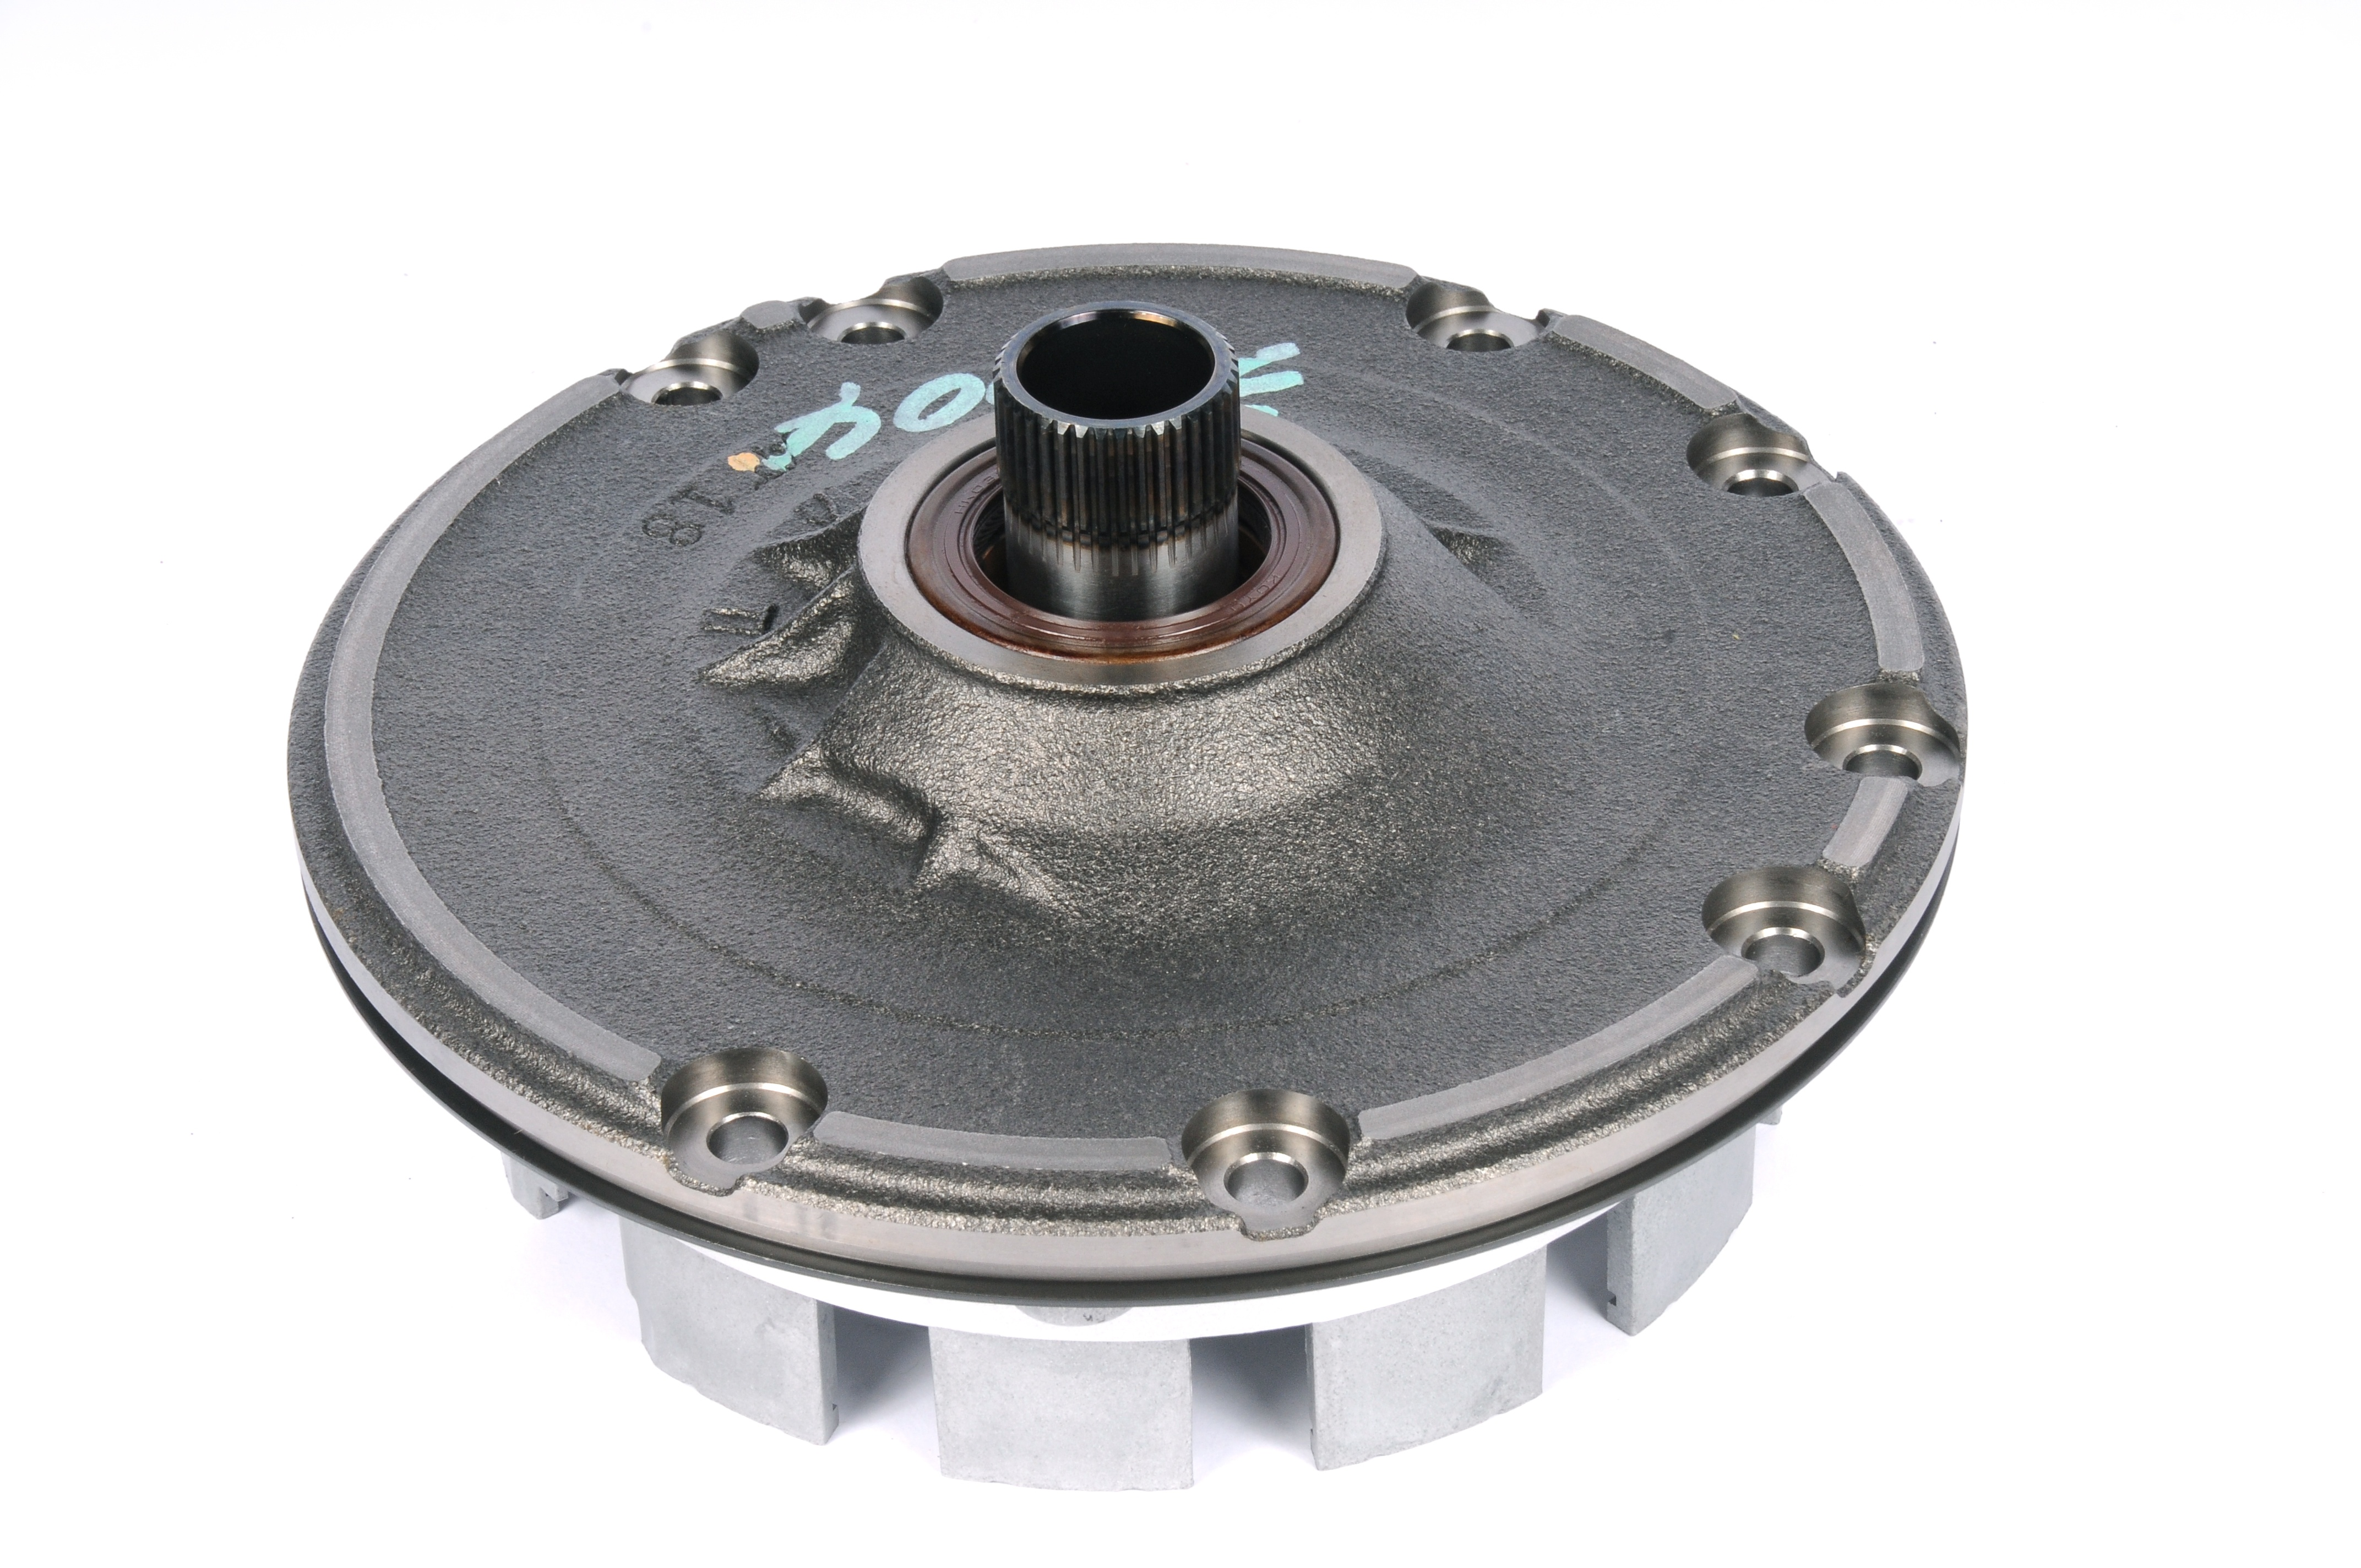 ACDELCO GM ORIGINAL EQUIPMENT - Automatic Transmission Oil Pump Assembly - DCB 24228761